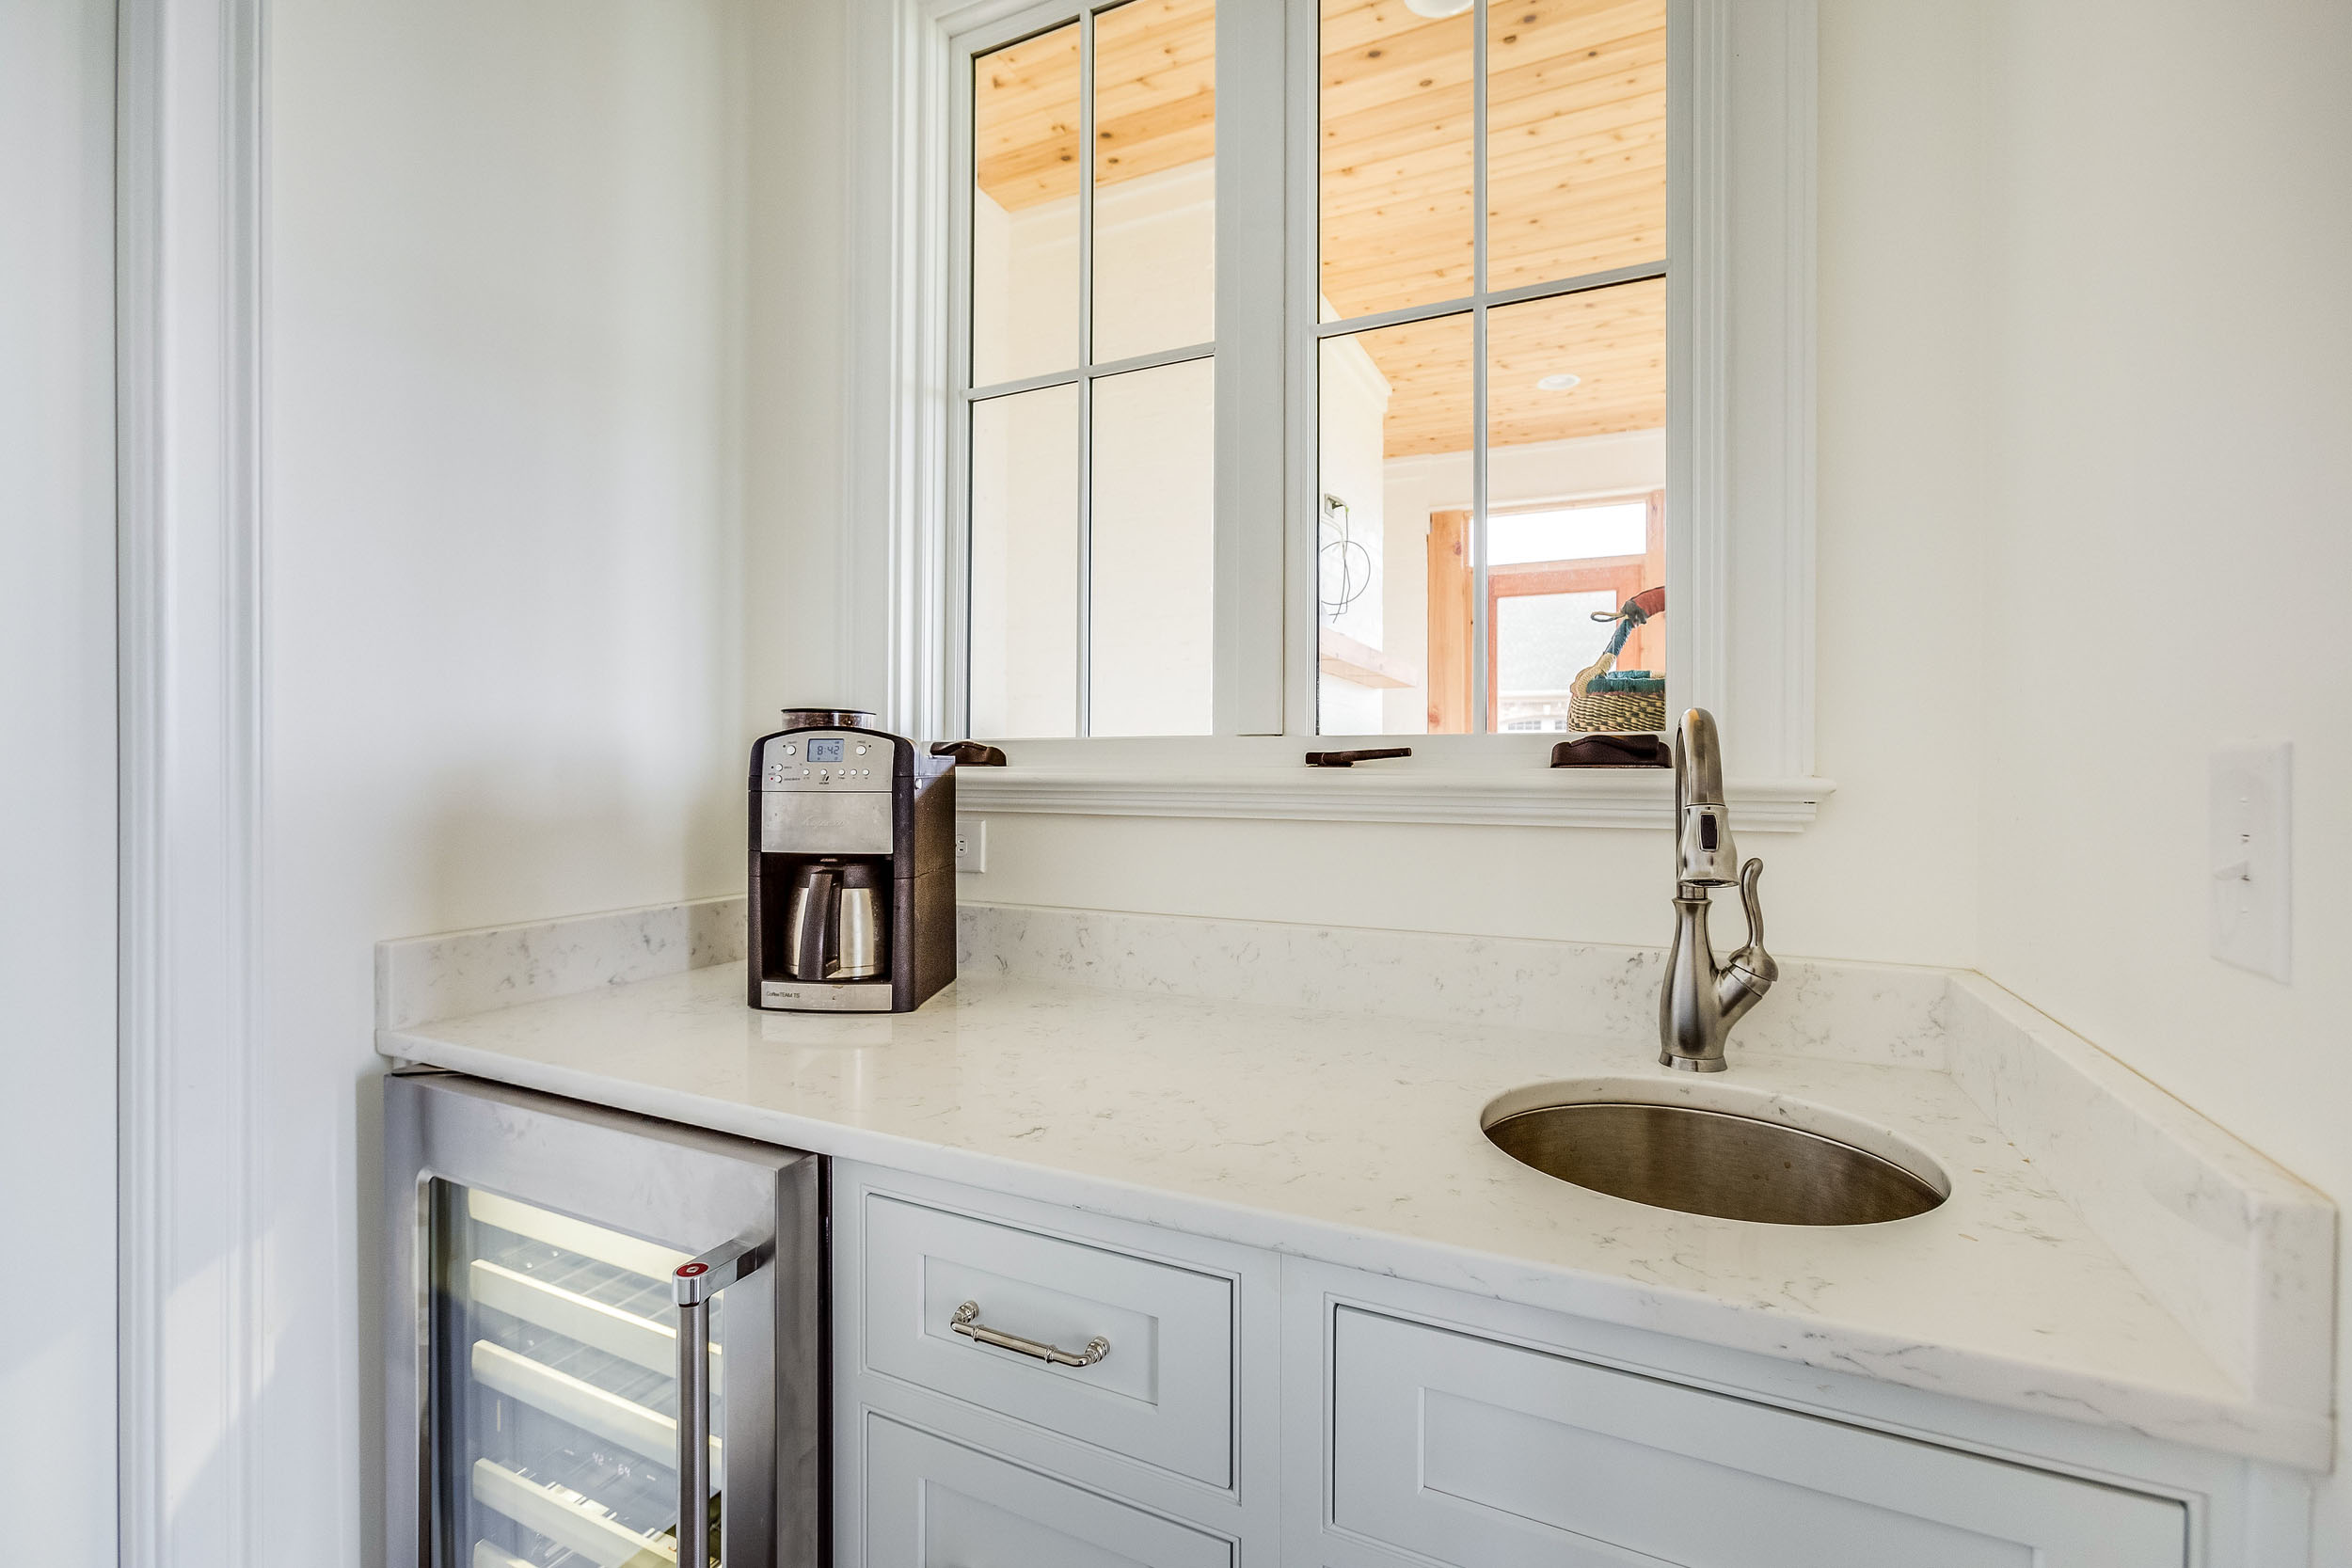 The pantry has french casement windows creating a pass through to the outdoor living space.